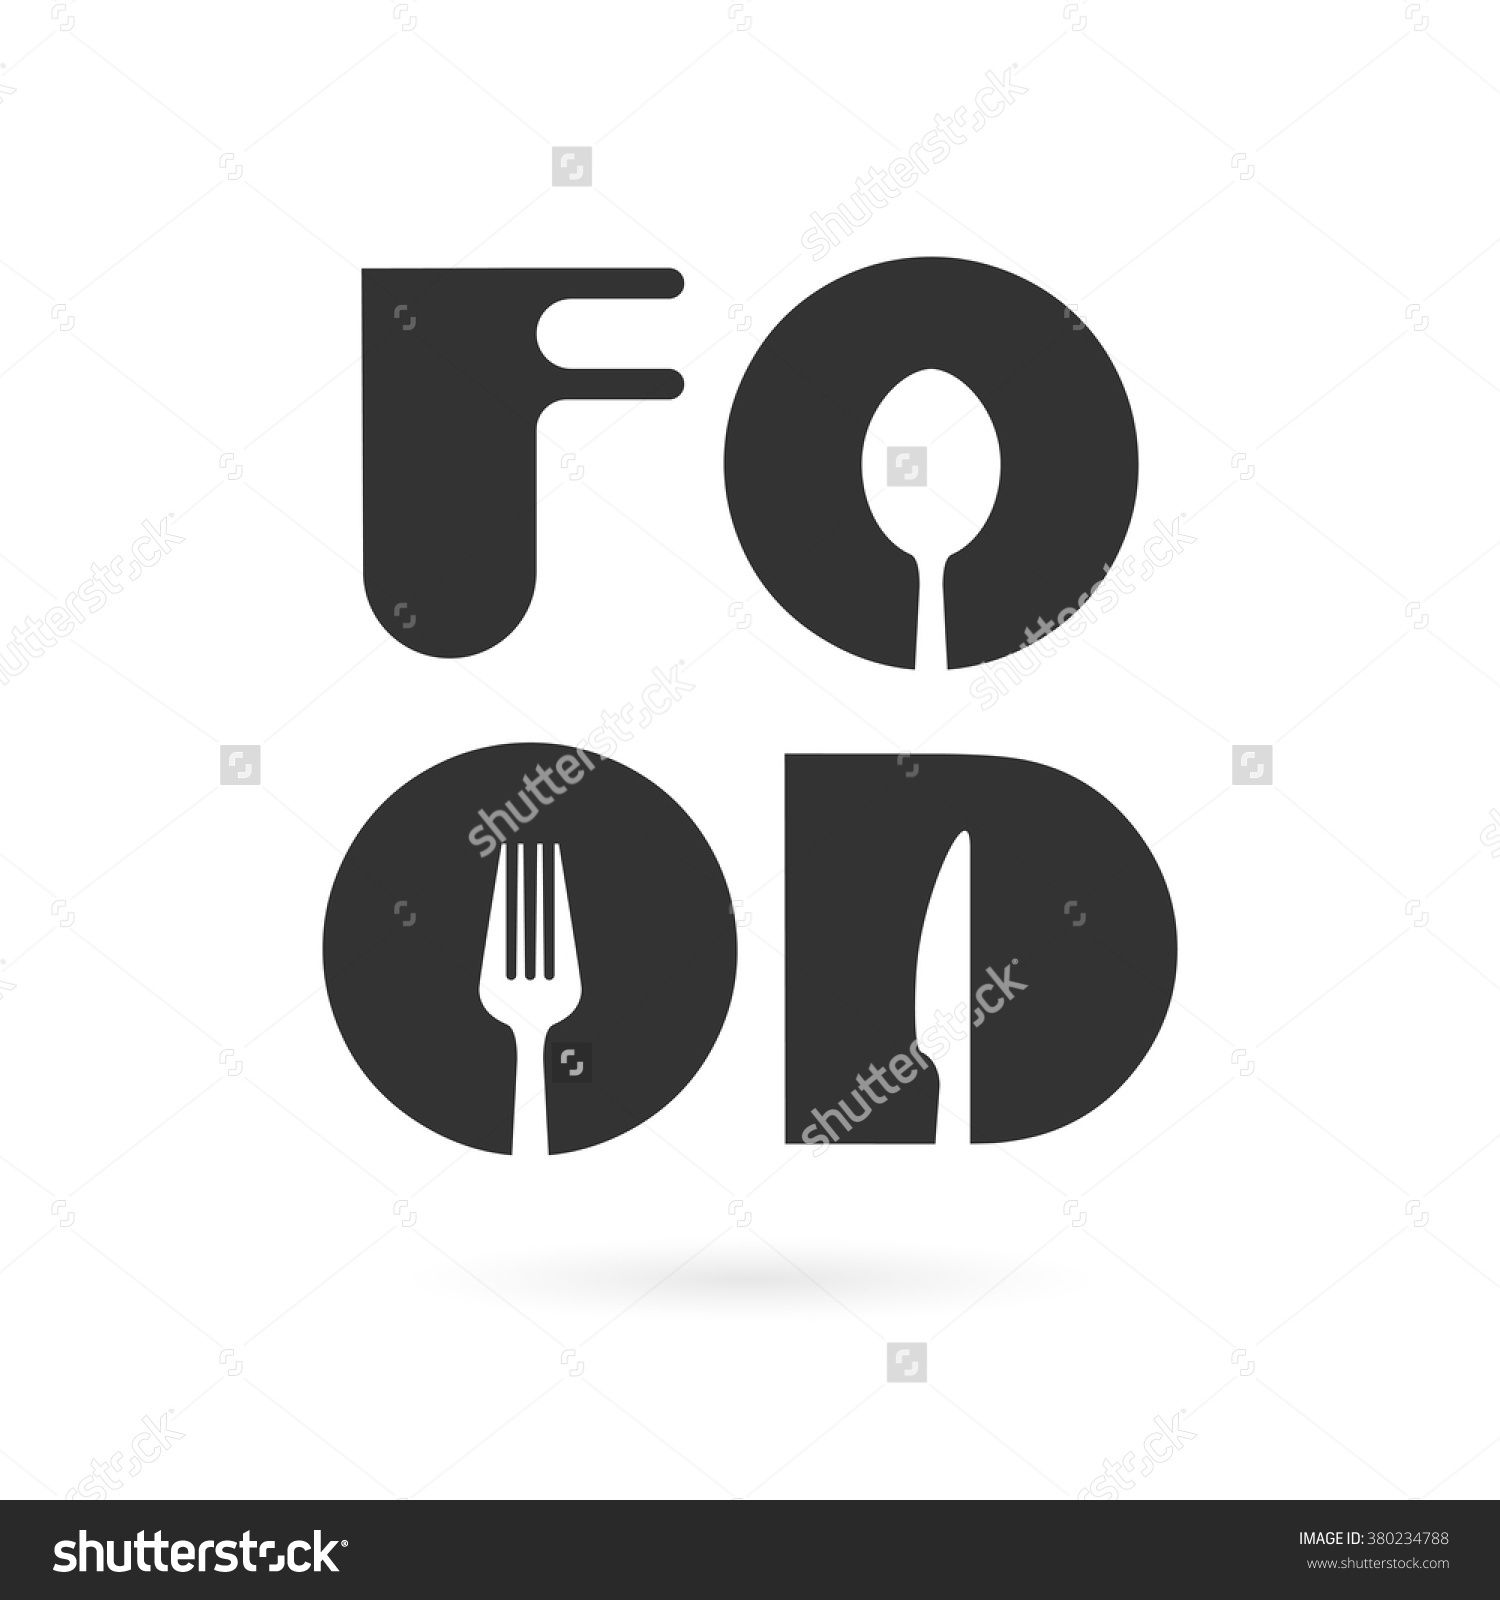 Creative Food Word Logo Elements Design With Spoonknife And Fork